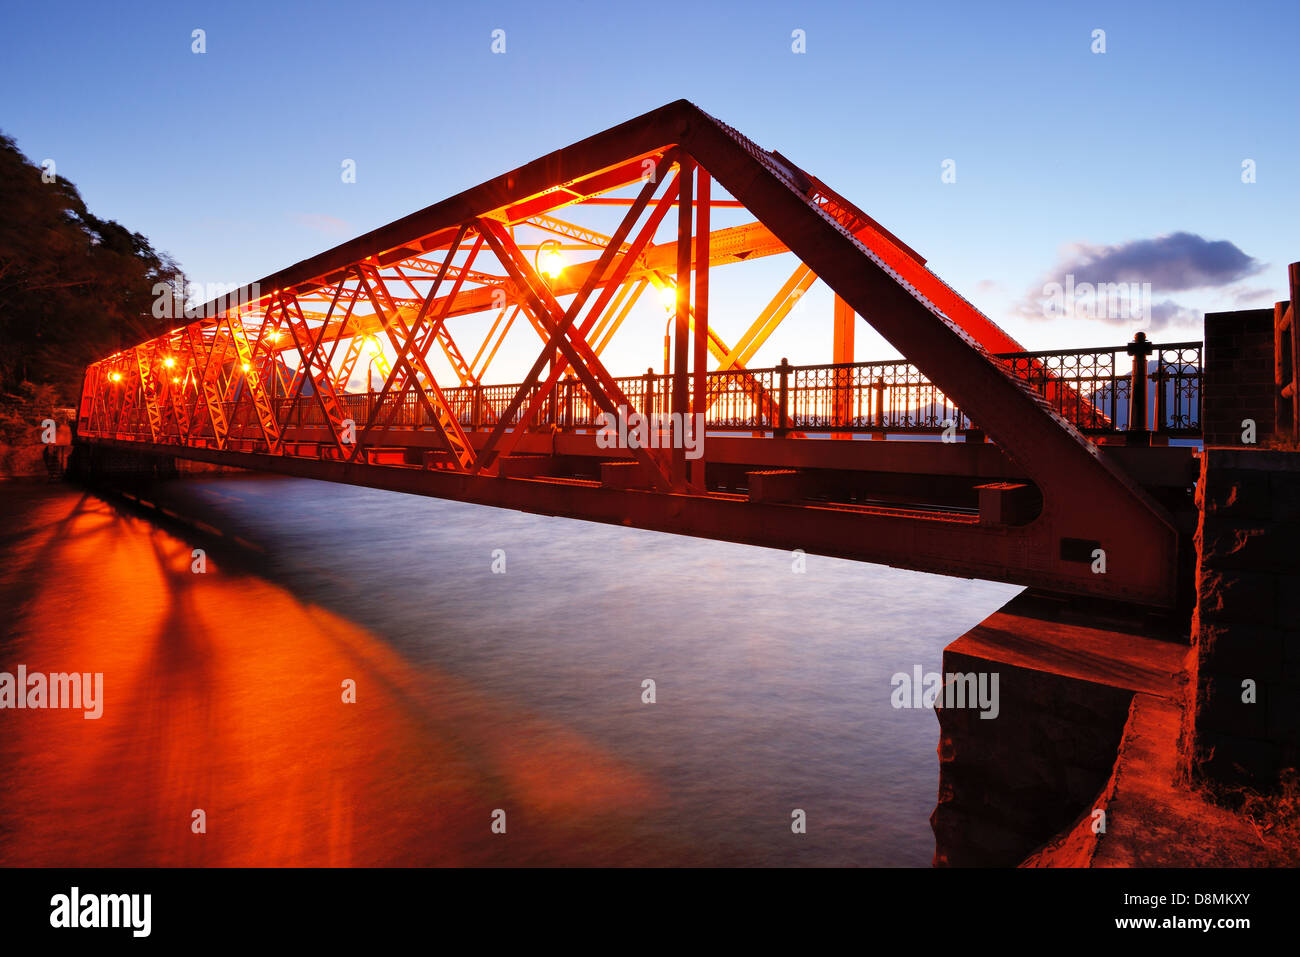 Sansen Bridge spanning Shikotsu Lake in the northern Island of Hokkaido, Japan. - Stock Image